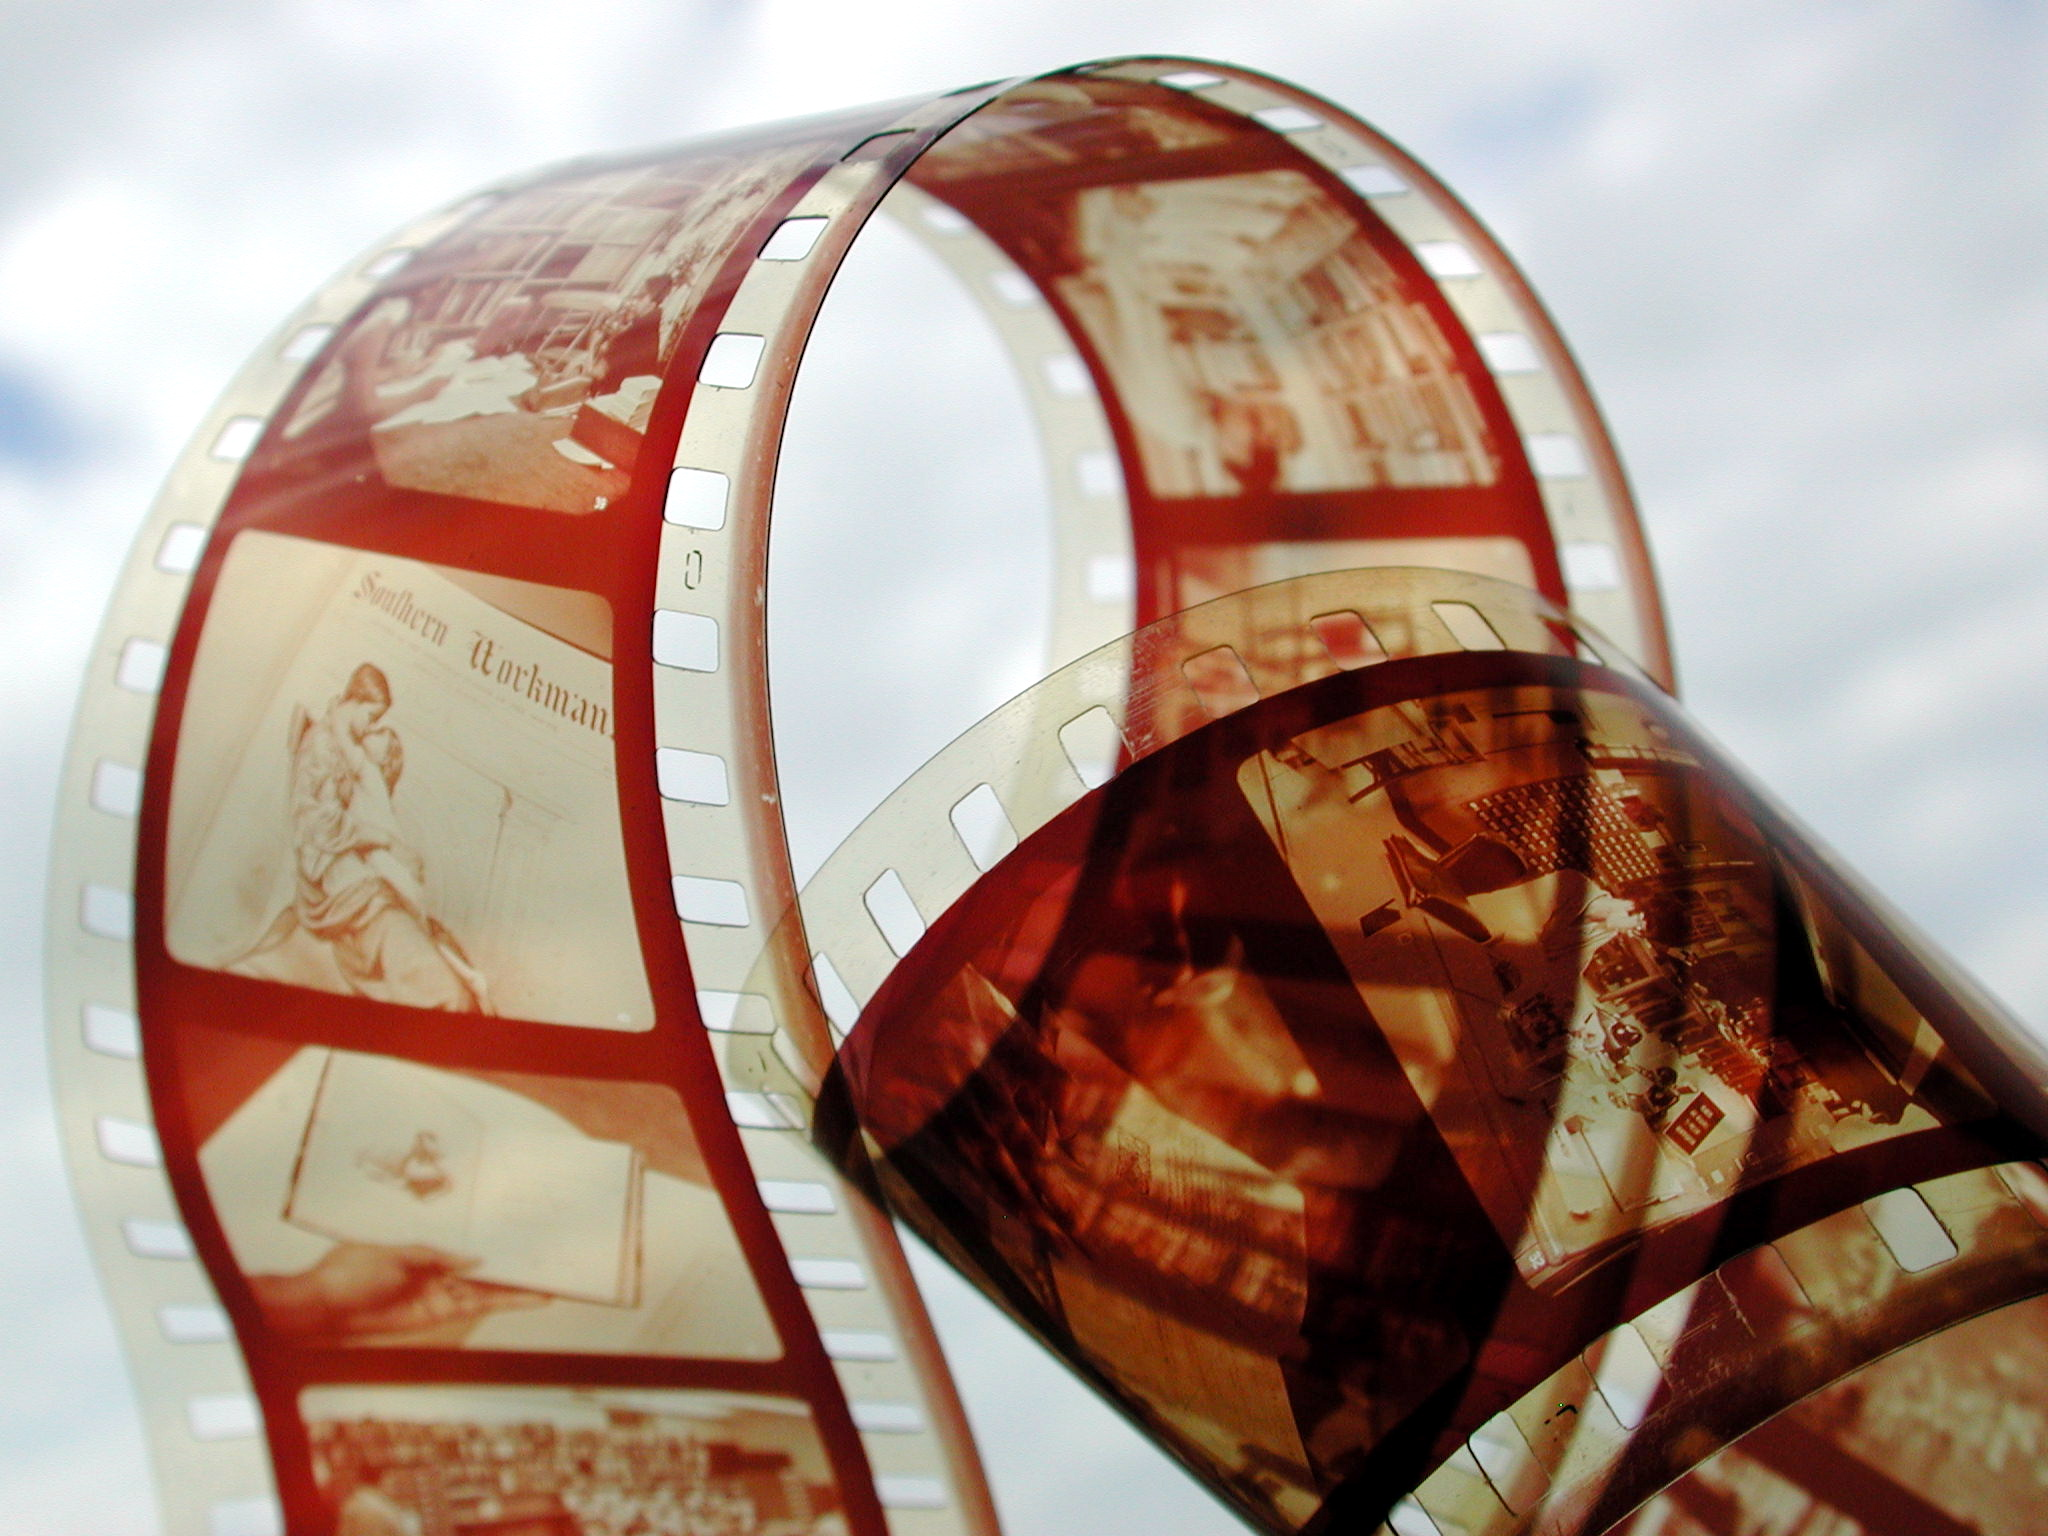 A twist of celluloid film. with actors visible on some frames